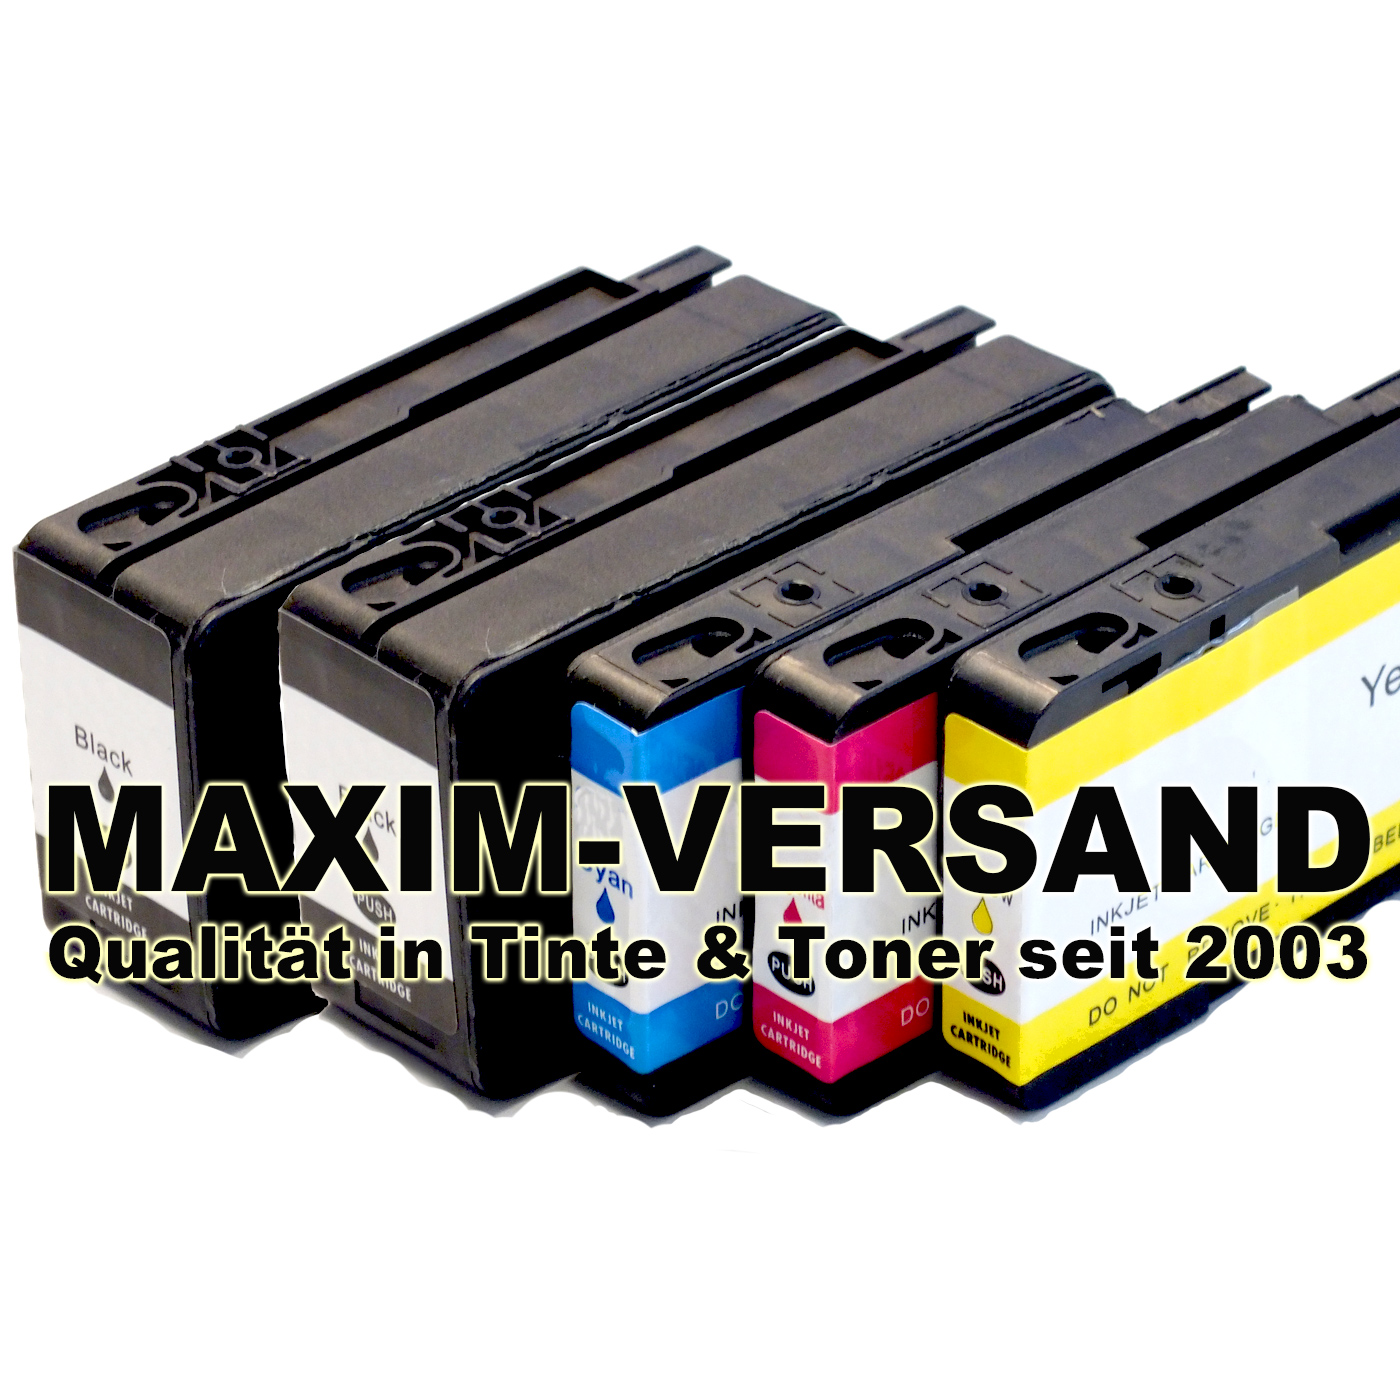 HP 953 XL Black(2), Cyan, Yellow, Magenta - kompatibel - alle Farben (5er Set)